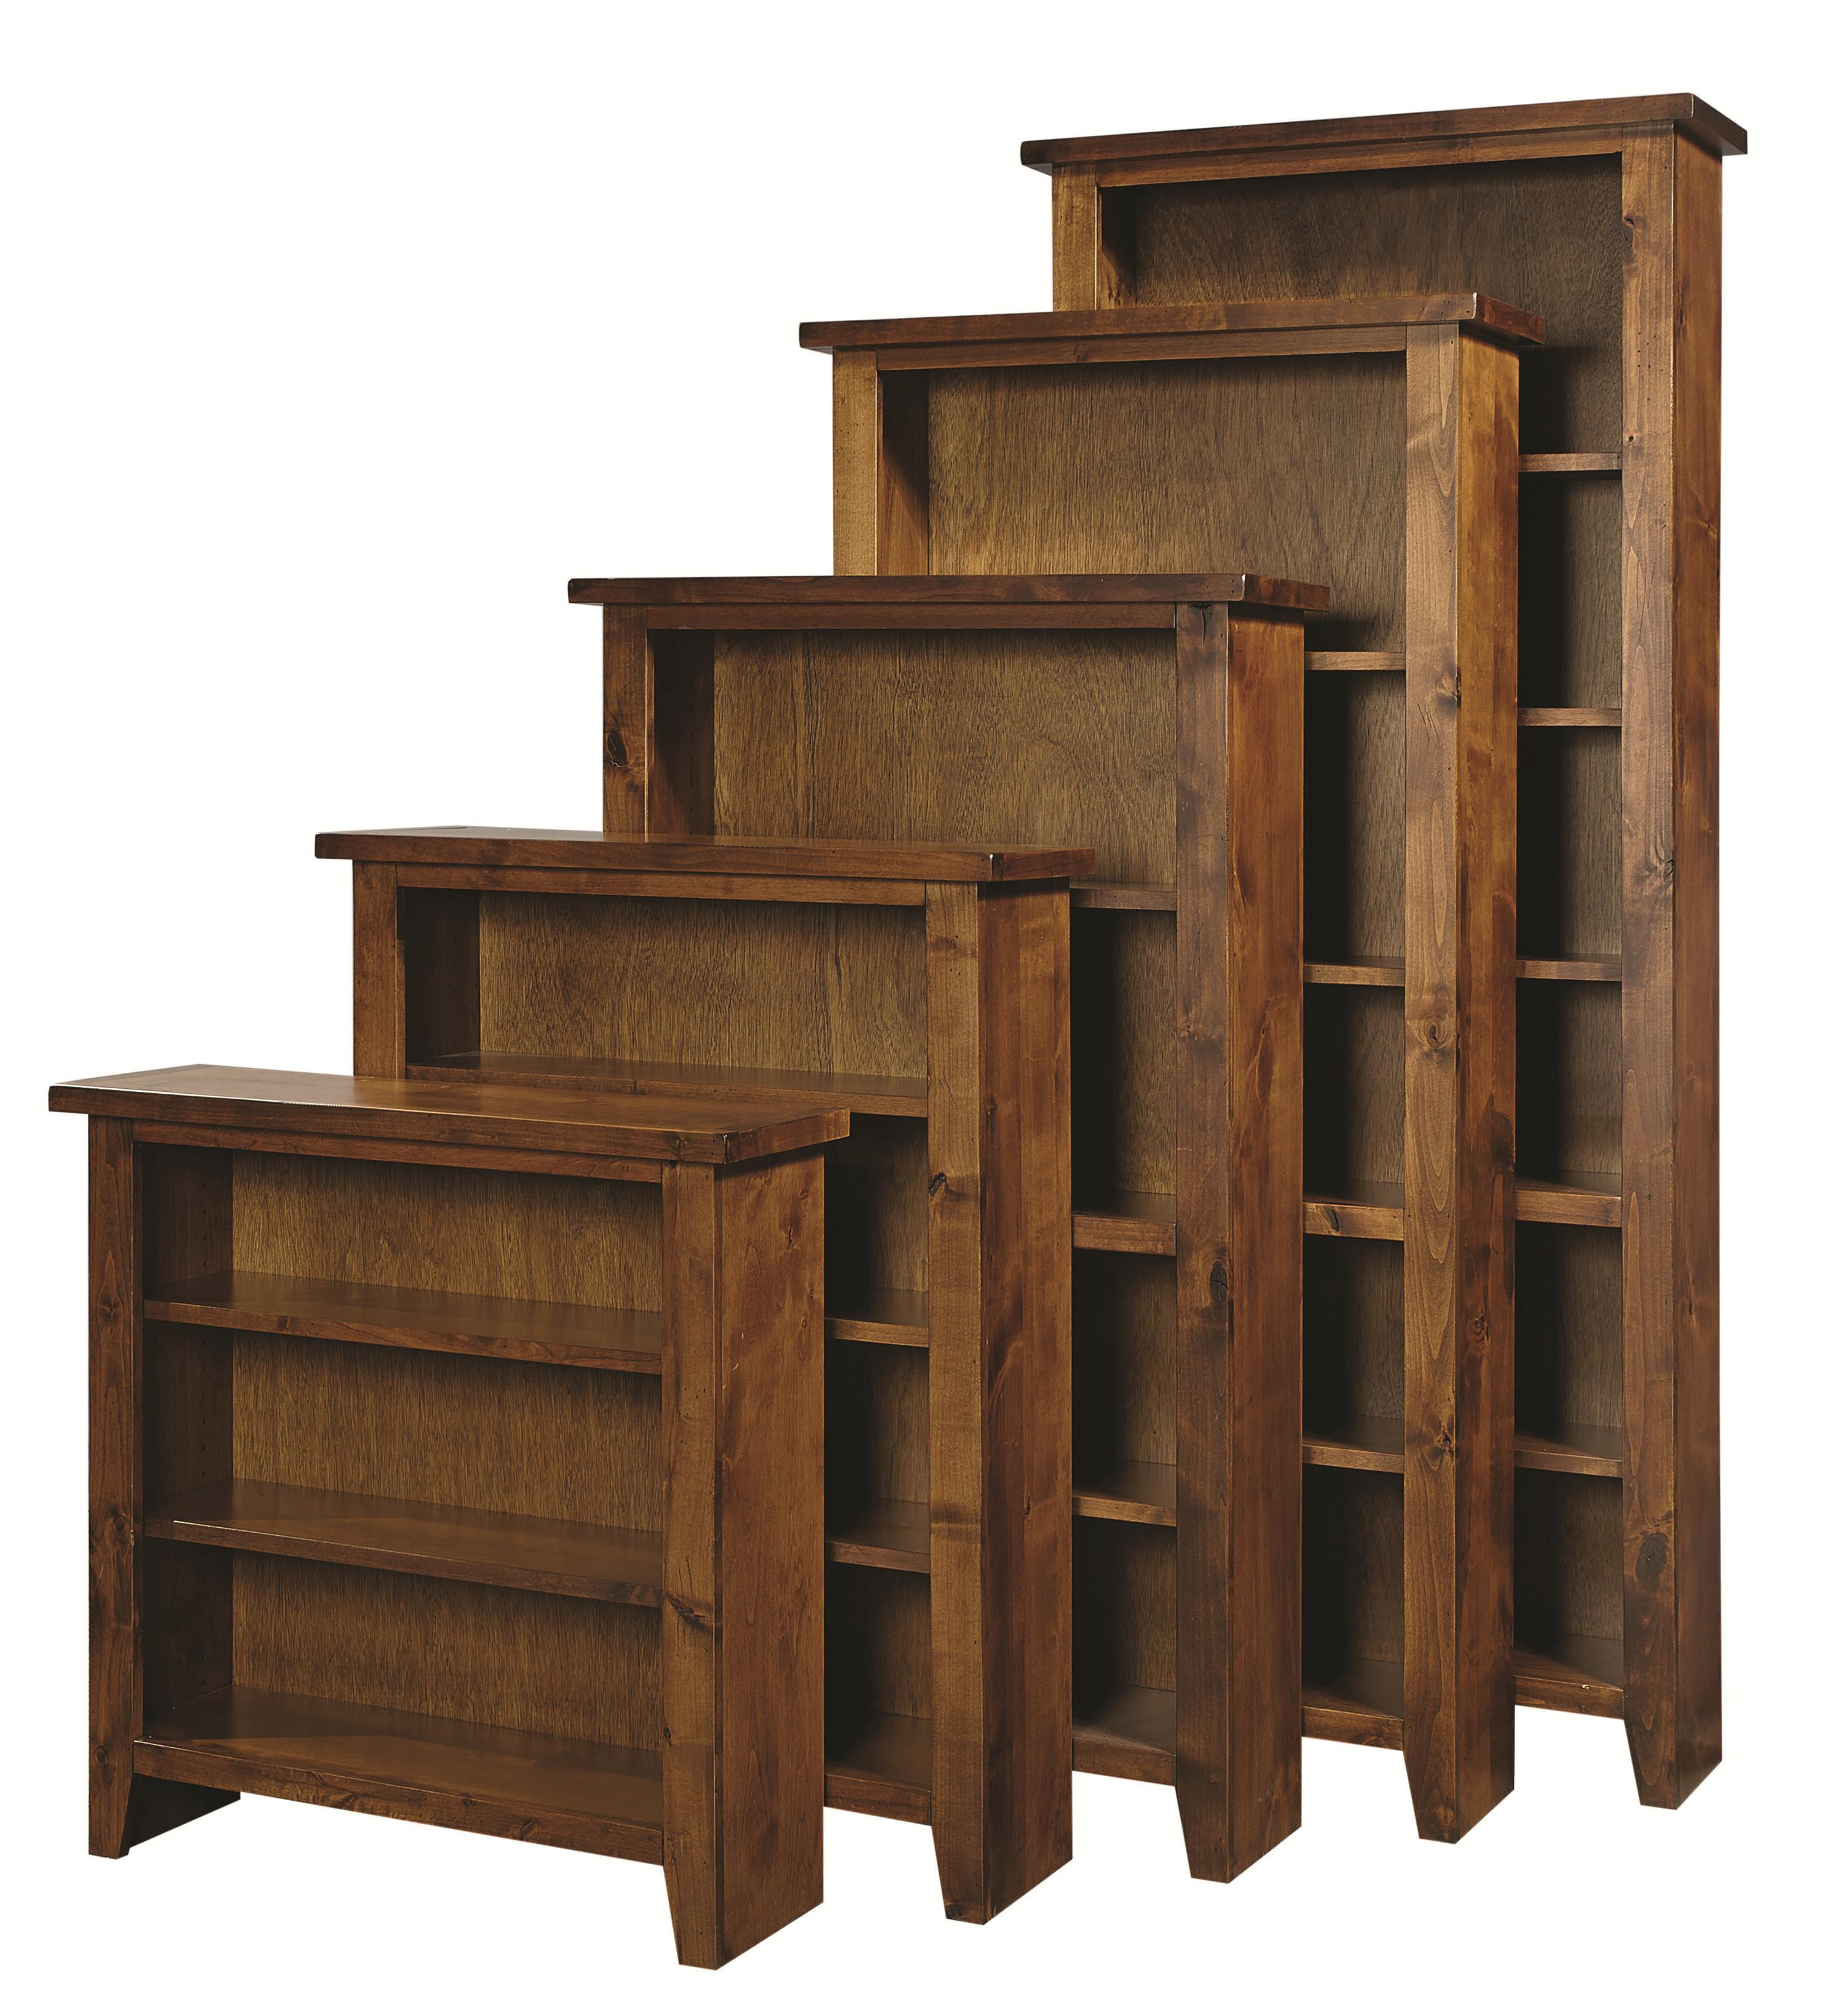 """Alder Grove Bookcase 84"""" H with 5 Shelves by Aspenhome at Mueller Furniture"""